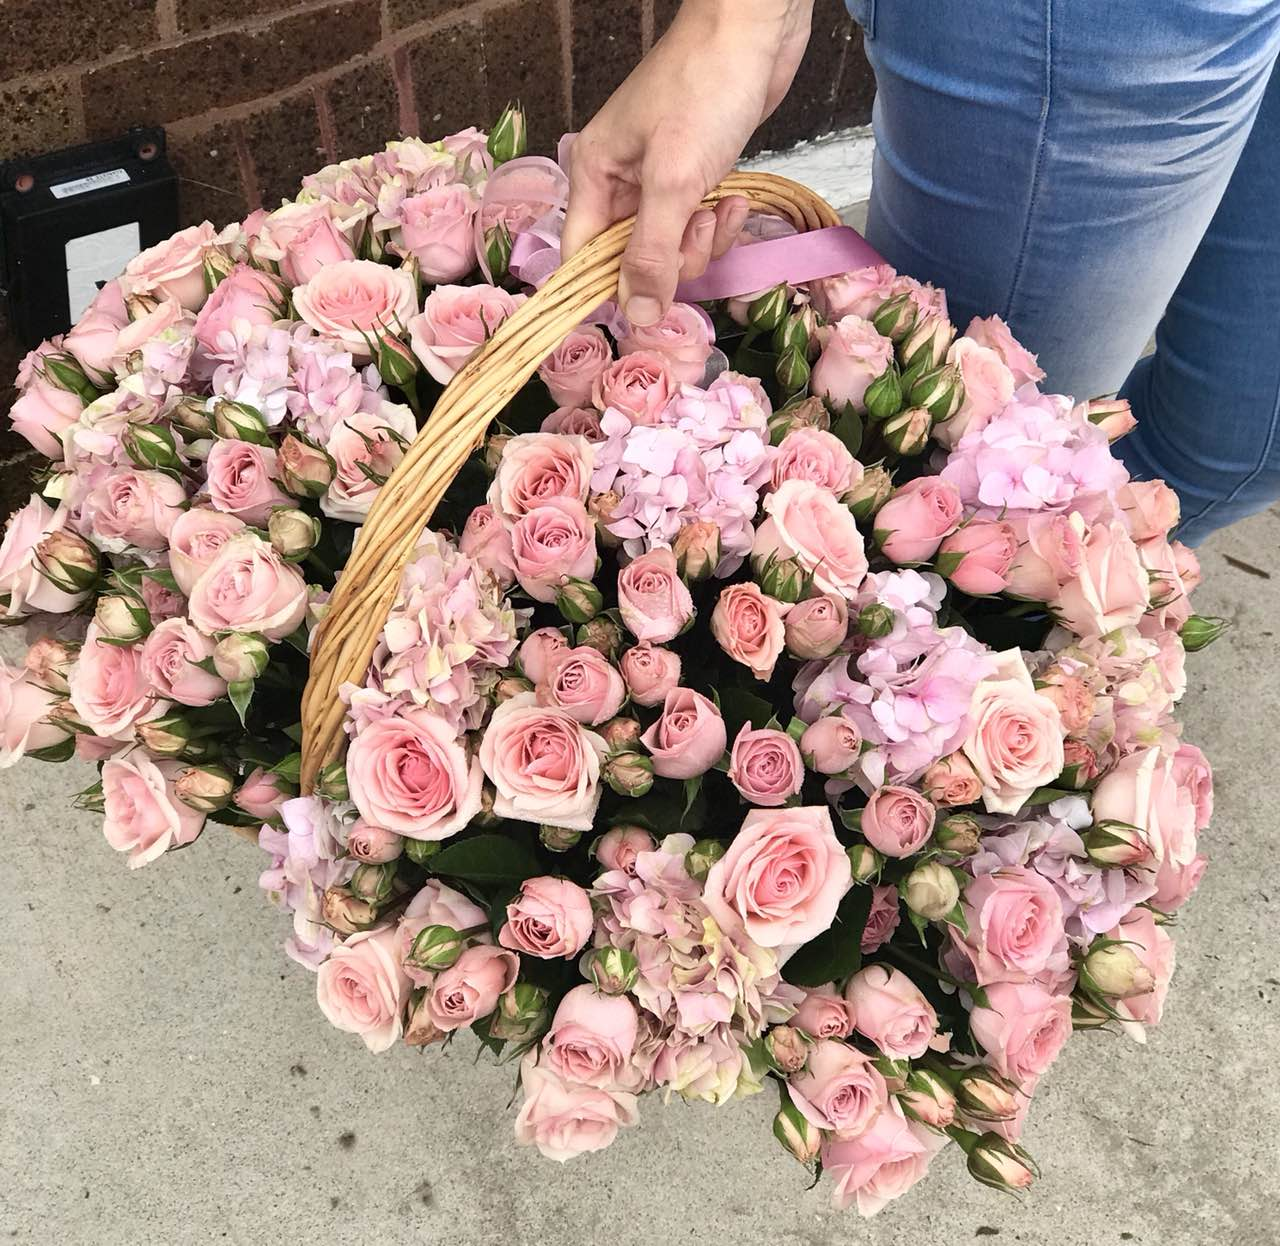 Welcome the newest little cutie into the world with this pink-tastic basket of roses and hydrangea.  Includes:  Pink mini roses, pink hydrangea. Basket Free message card